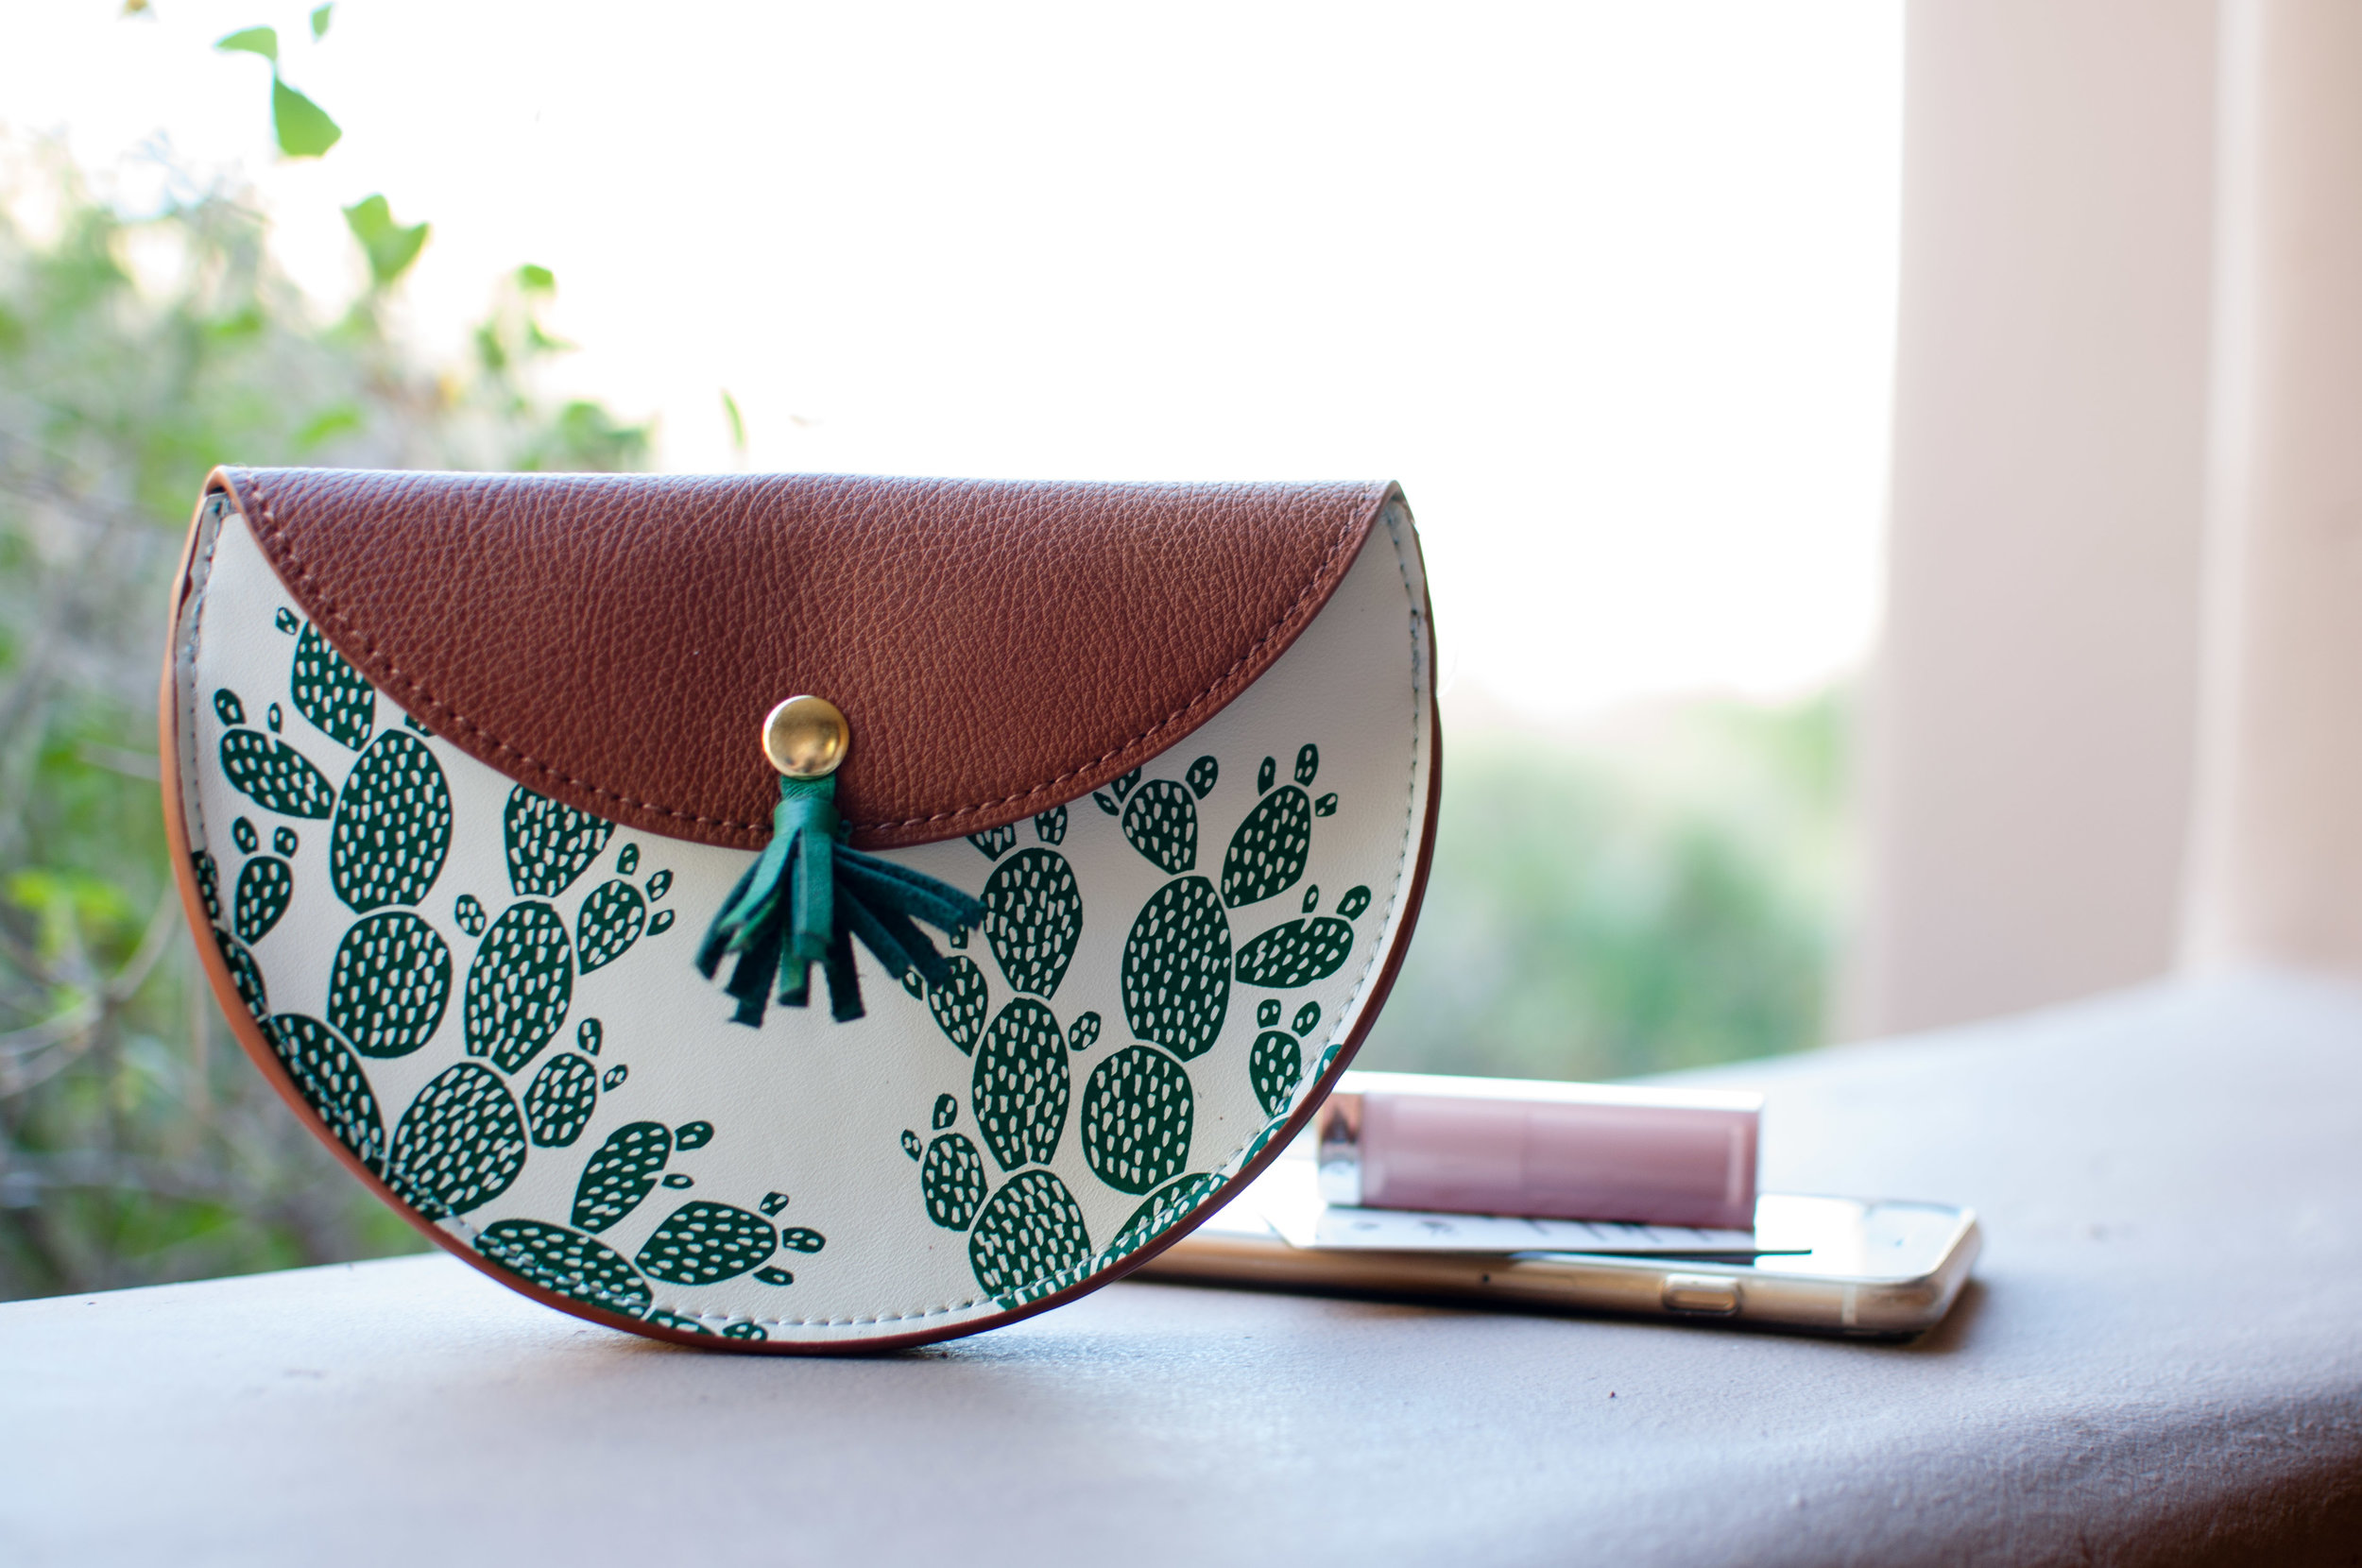 I walked into Anthropologie the other day without any intention of buying anything (but when does that work out in that store). I saw this cute  cactus pouch  and knew it would be the best accessory for carrying around my phone and keycard around the resort in Scottsdale, AZ.